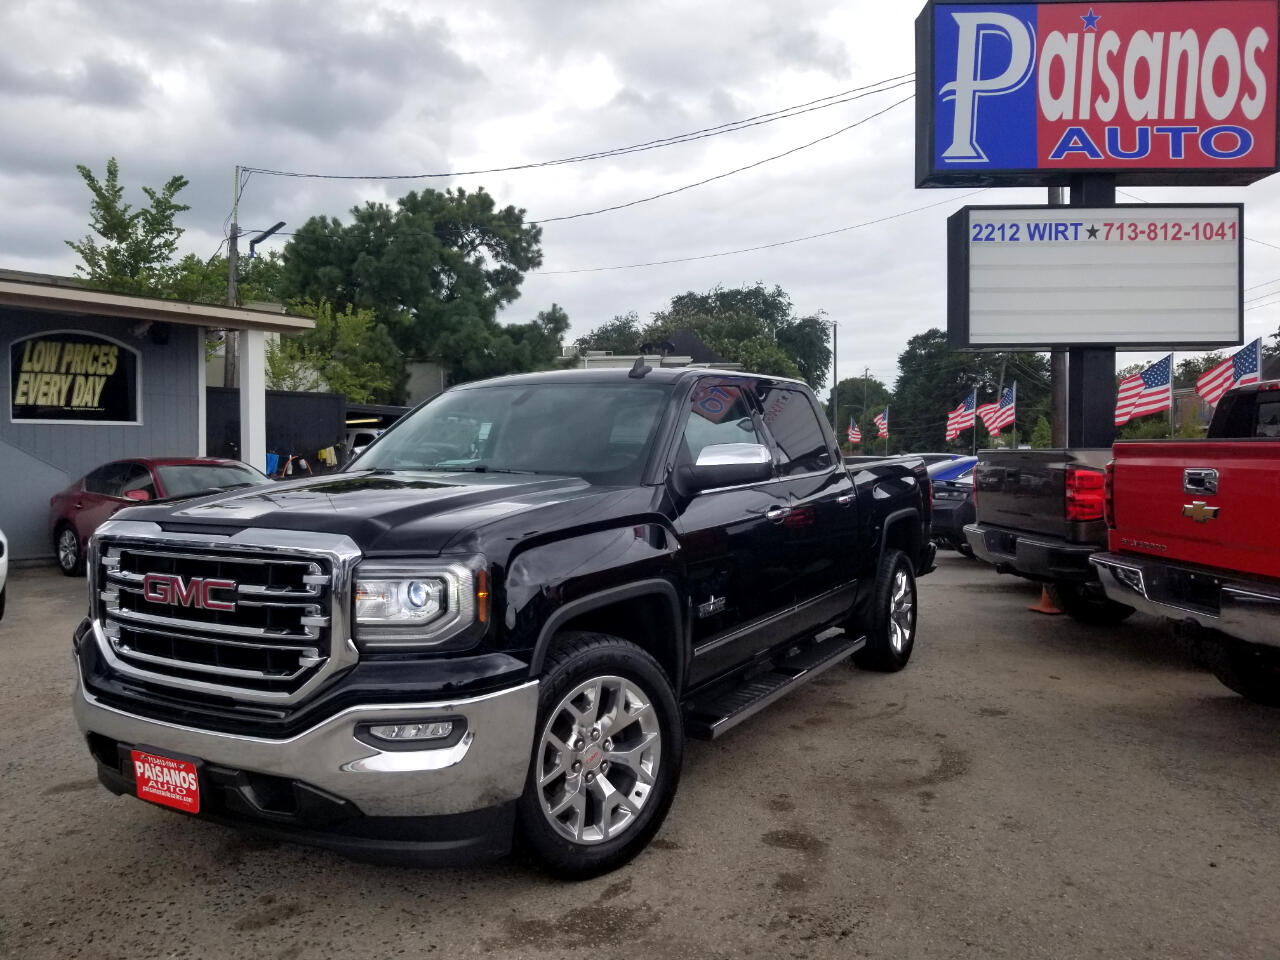 2017 GMC Sierra 1500 SLT Crew Cab Long Box 2WD